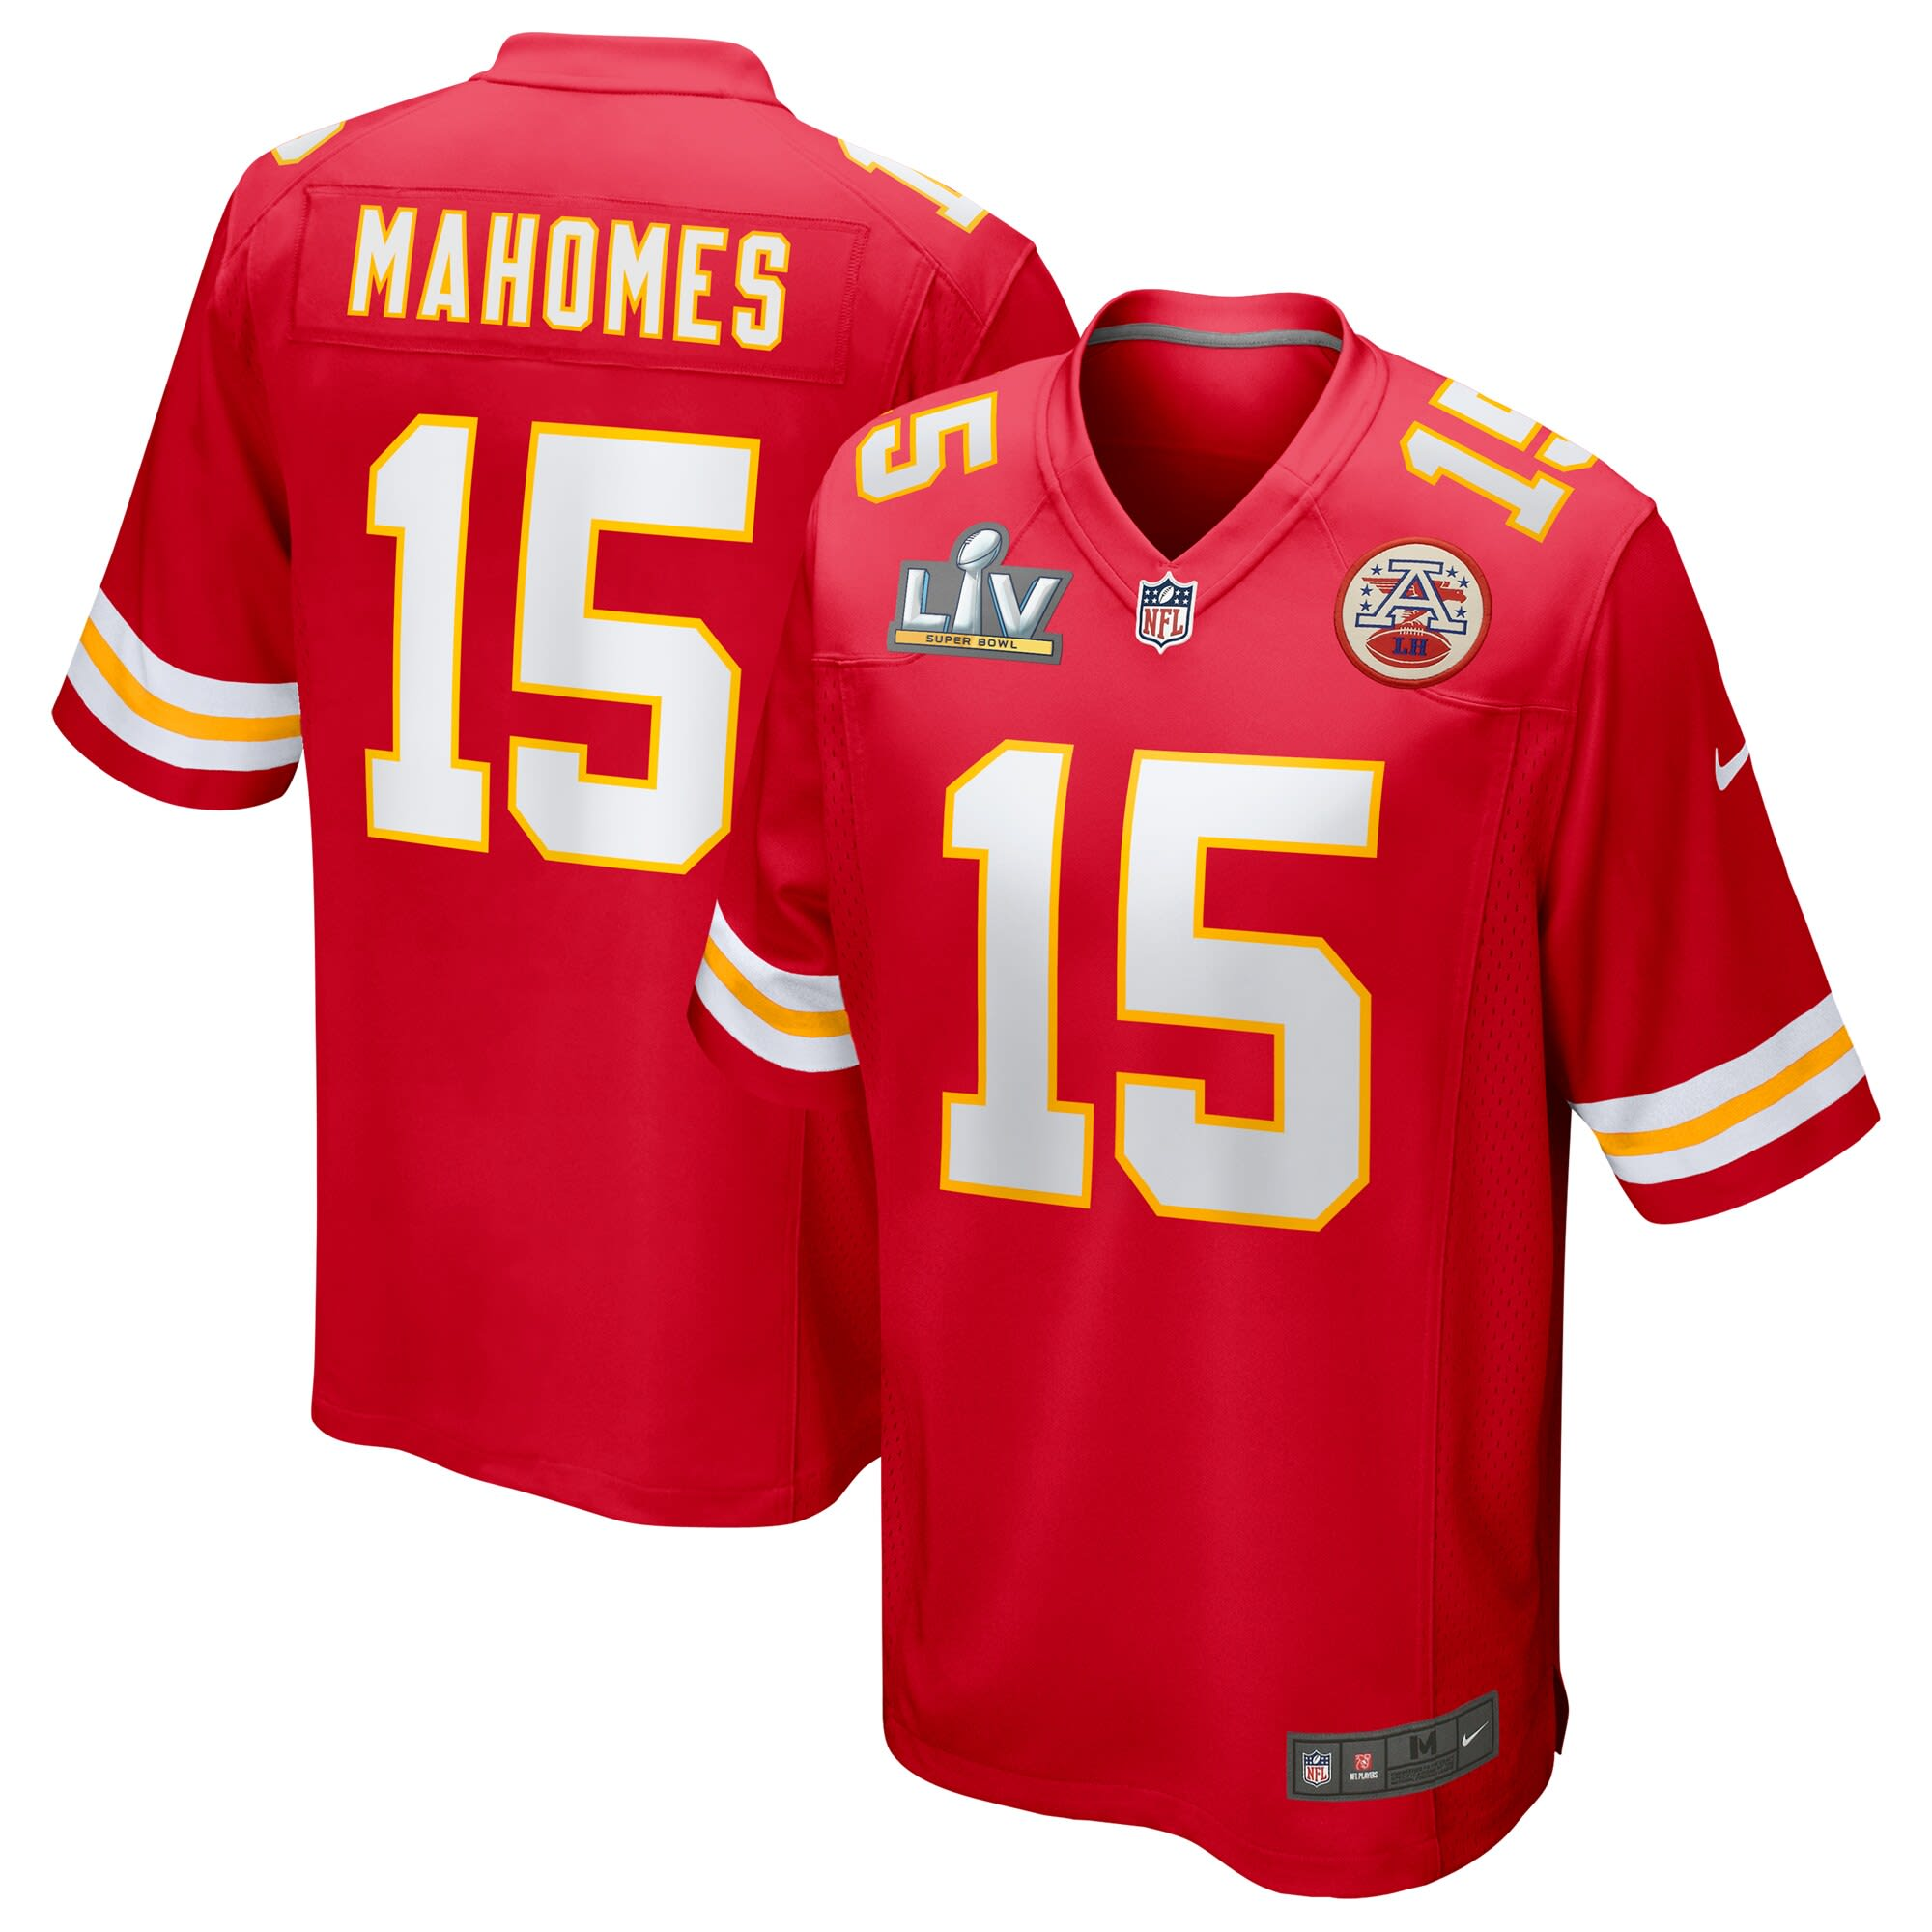 The Kansas City Chiefs are going to the Super Bowl. Time to gear up.